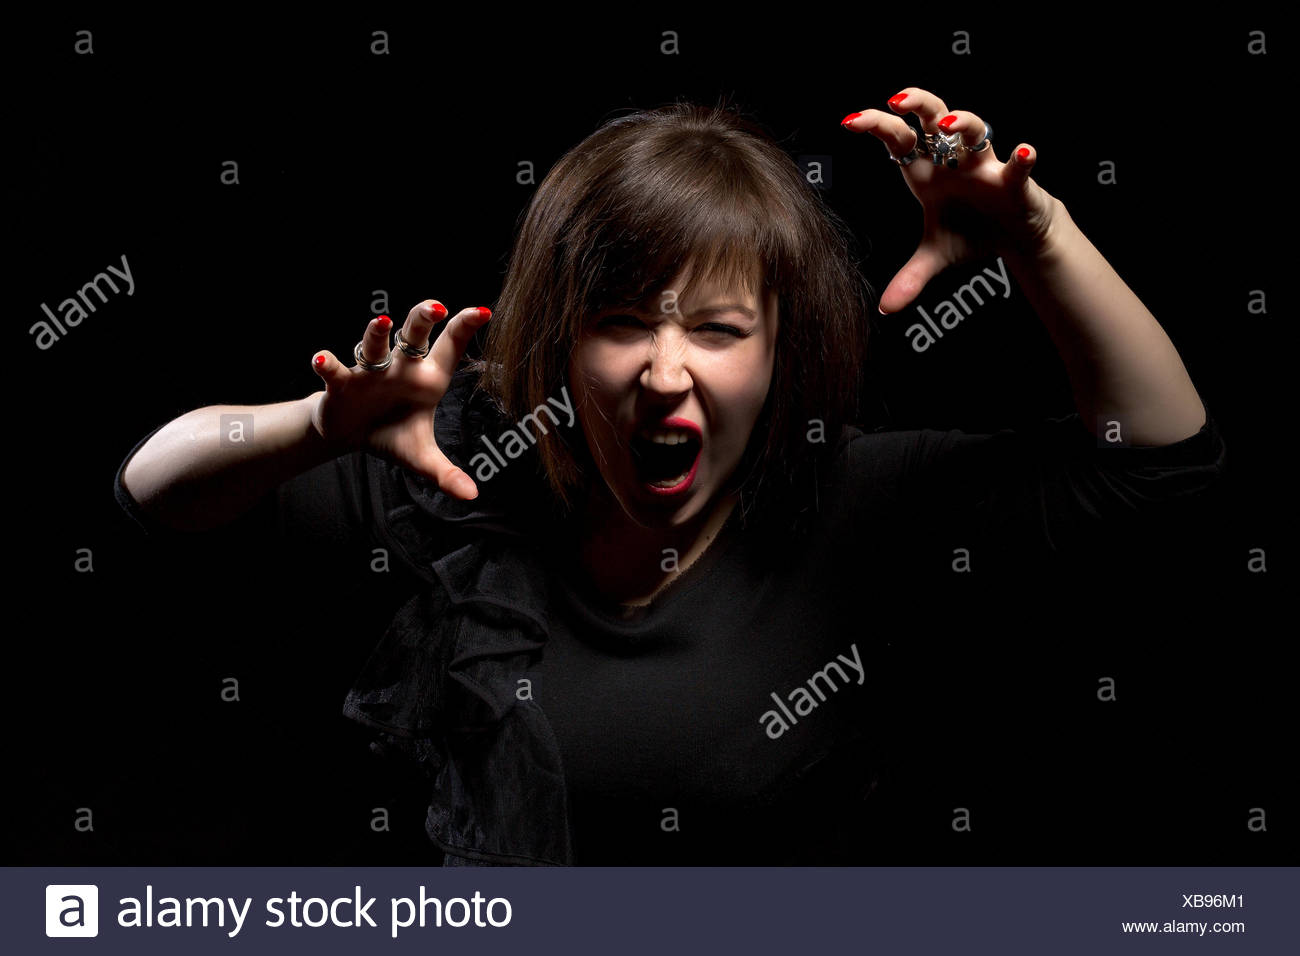 Woman throwing a temper tantrum - Stock Image